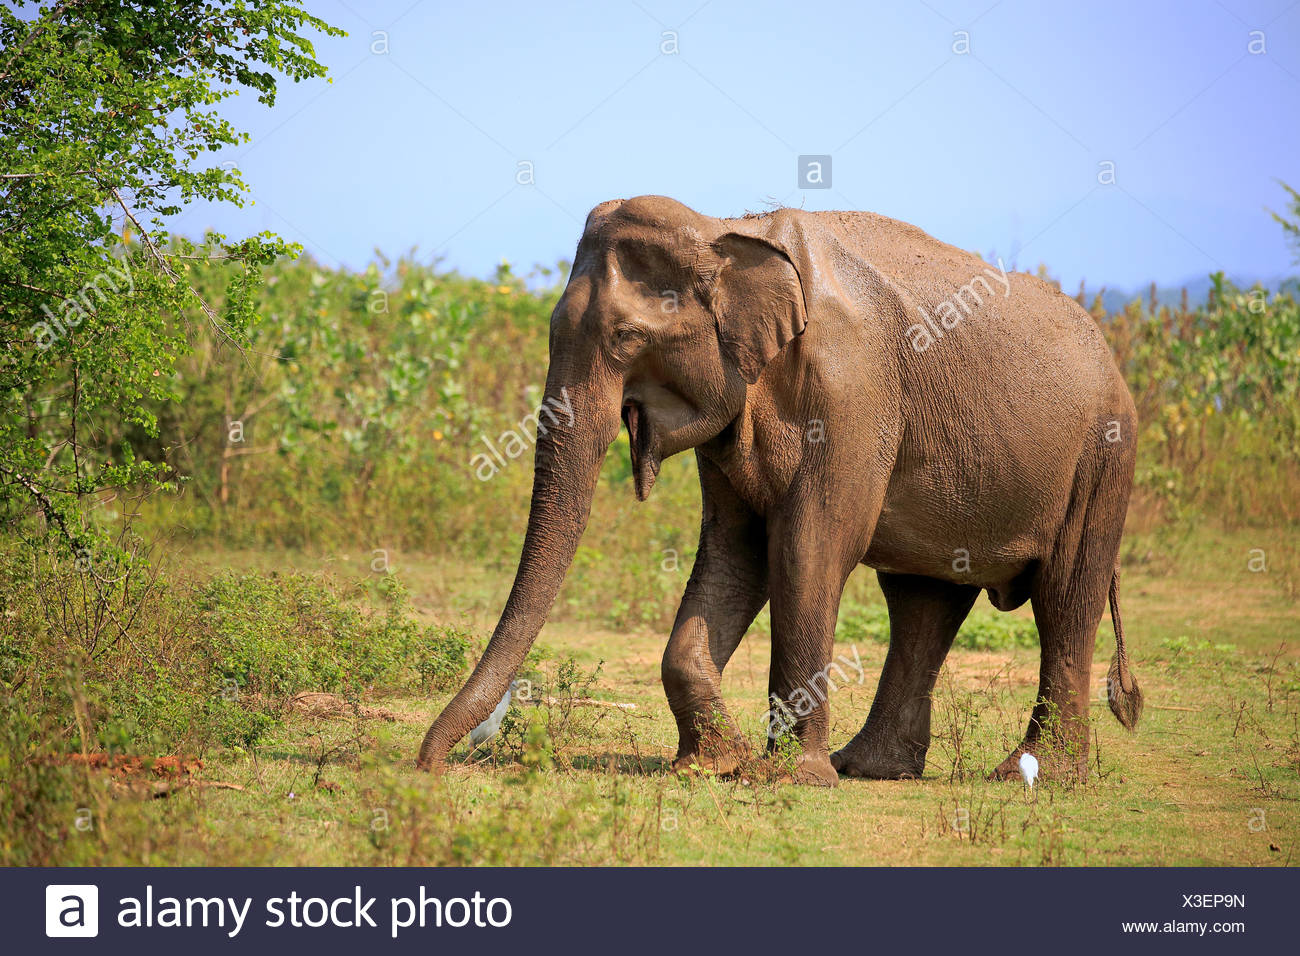 L'éléphant du Sri Lanka (Elephas maximus maximus), adulte, homme, alimentation, parc national Udawalawe, Sri Lanka Photo Stock